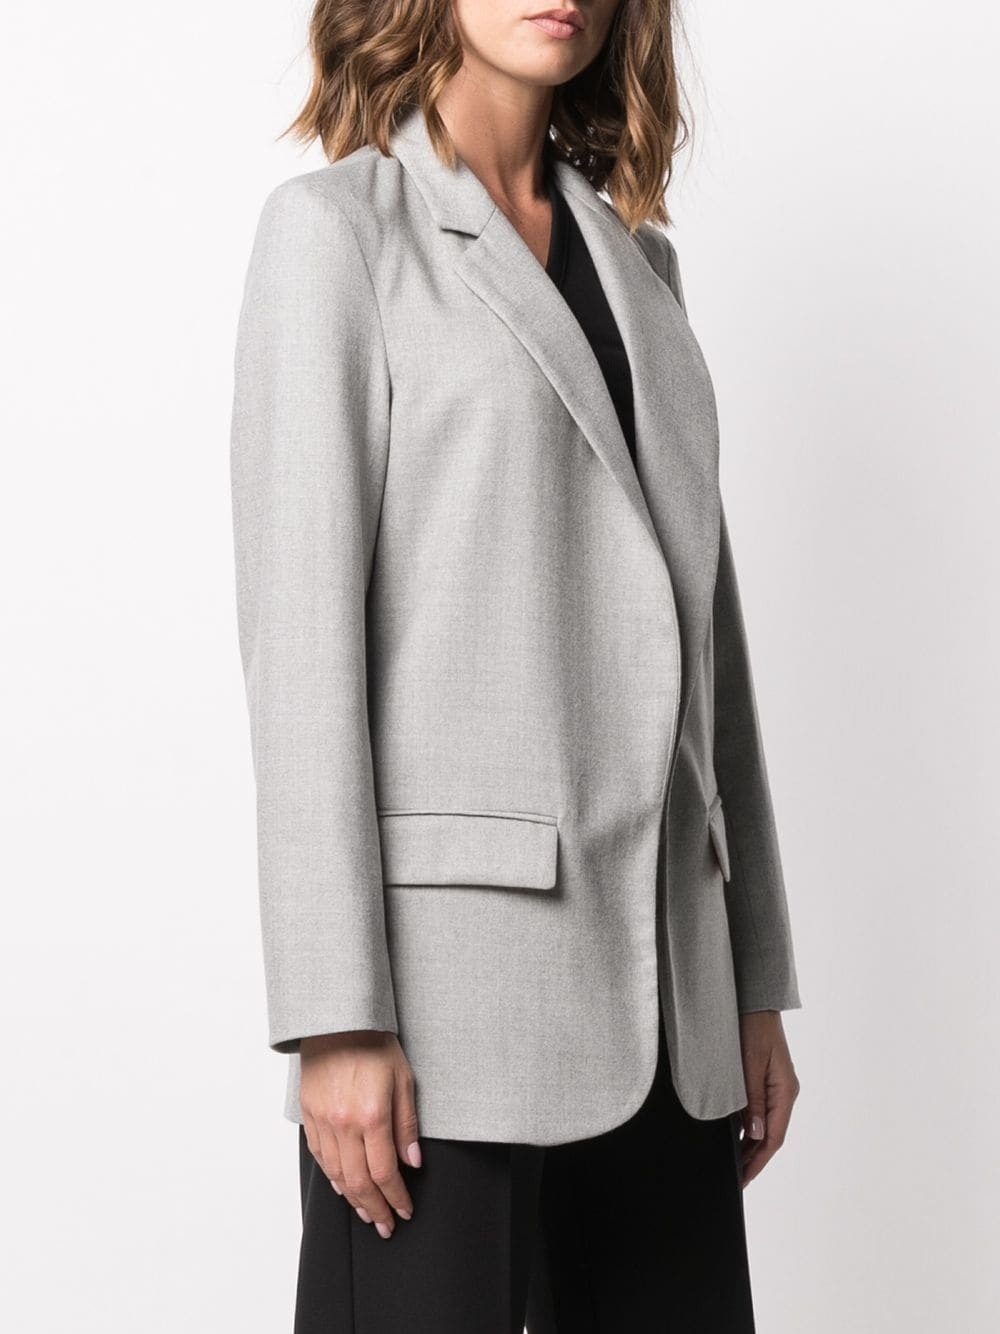 Light grey single breasted blazer featuring notched lapels ALTEA |  | 206250423